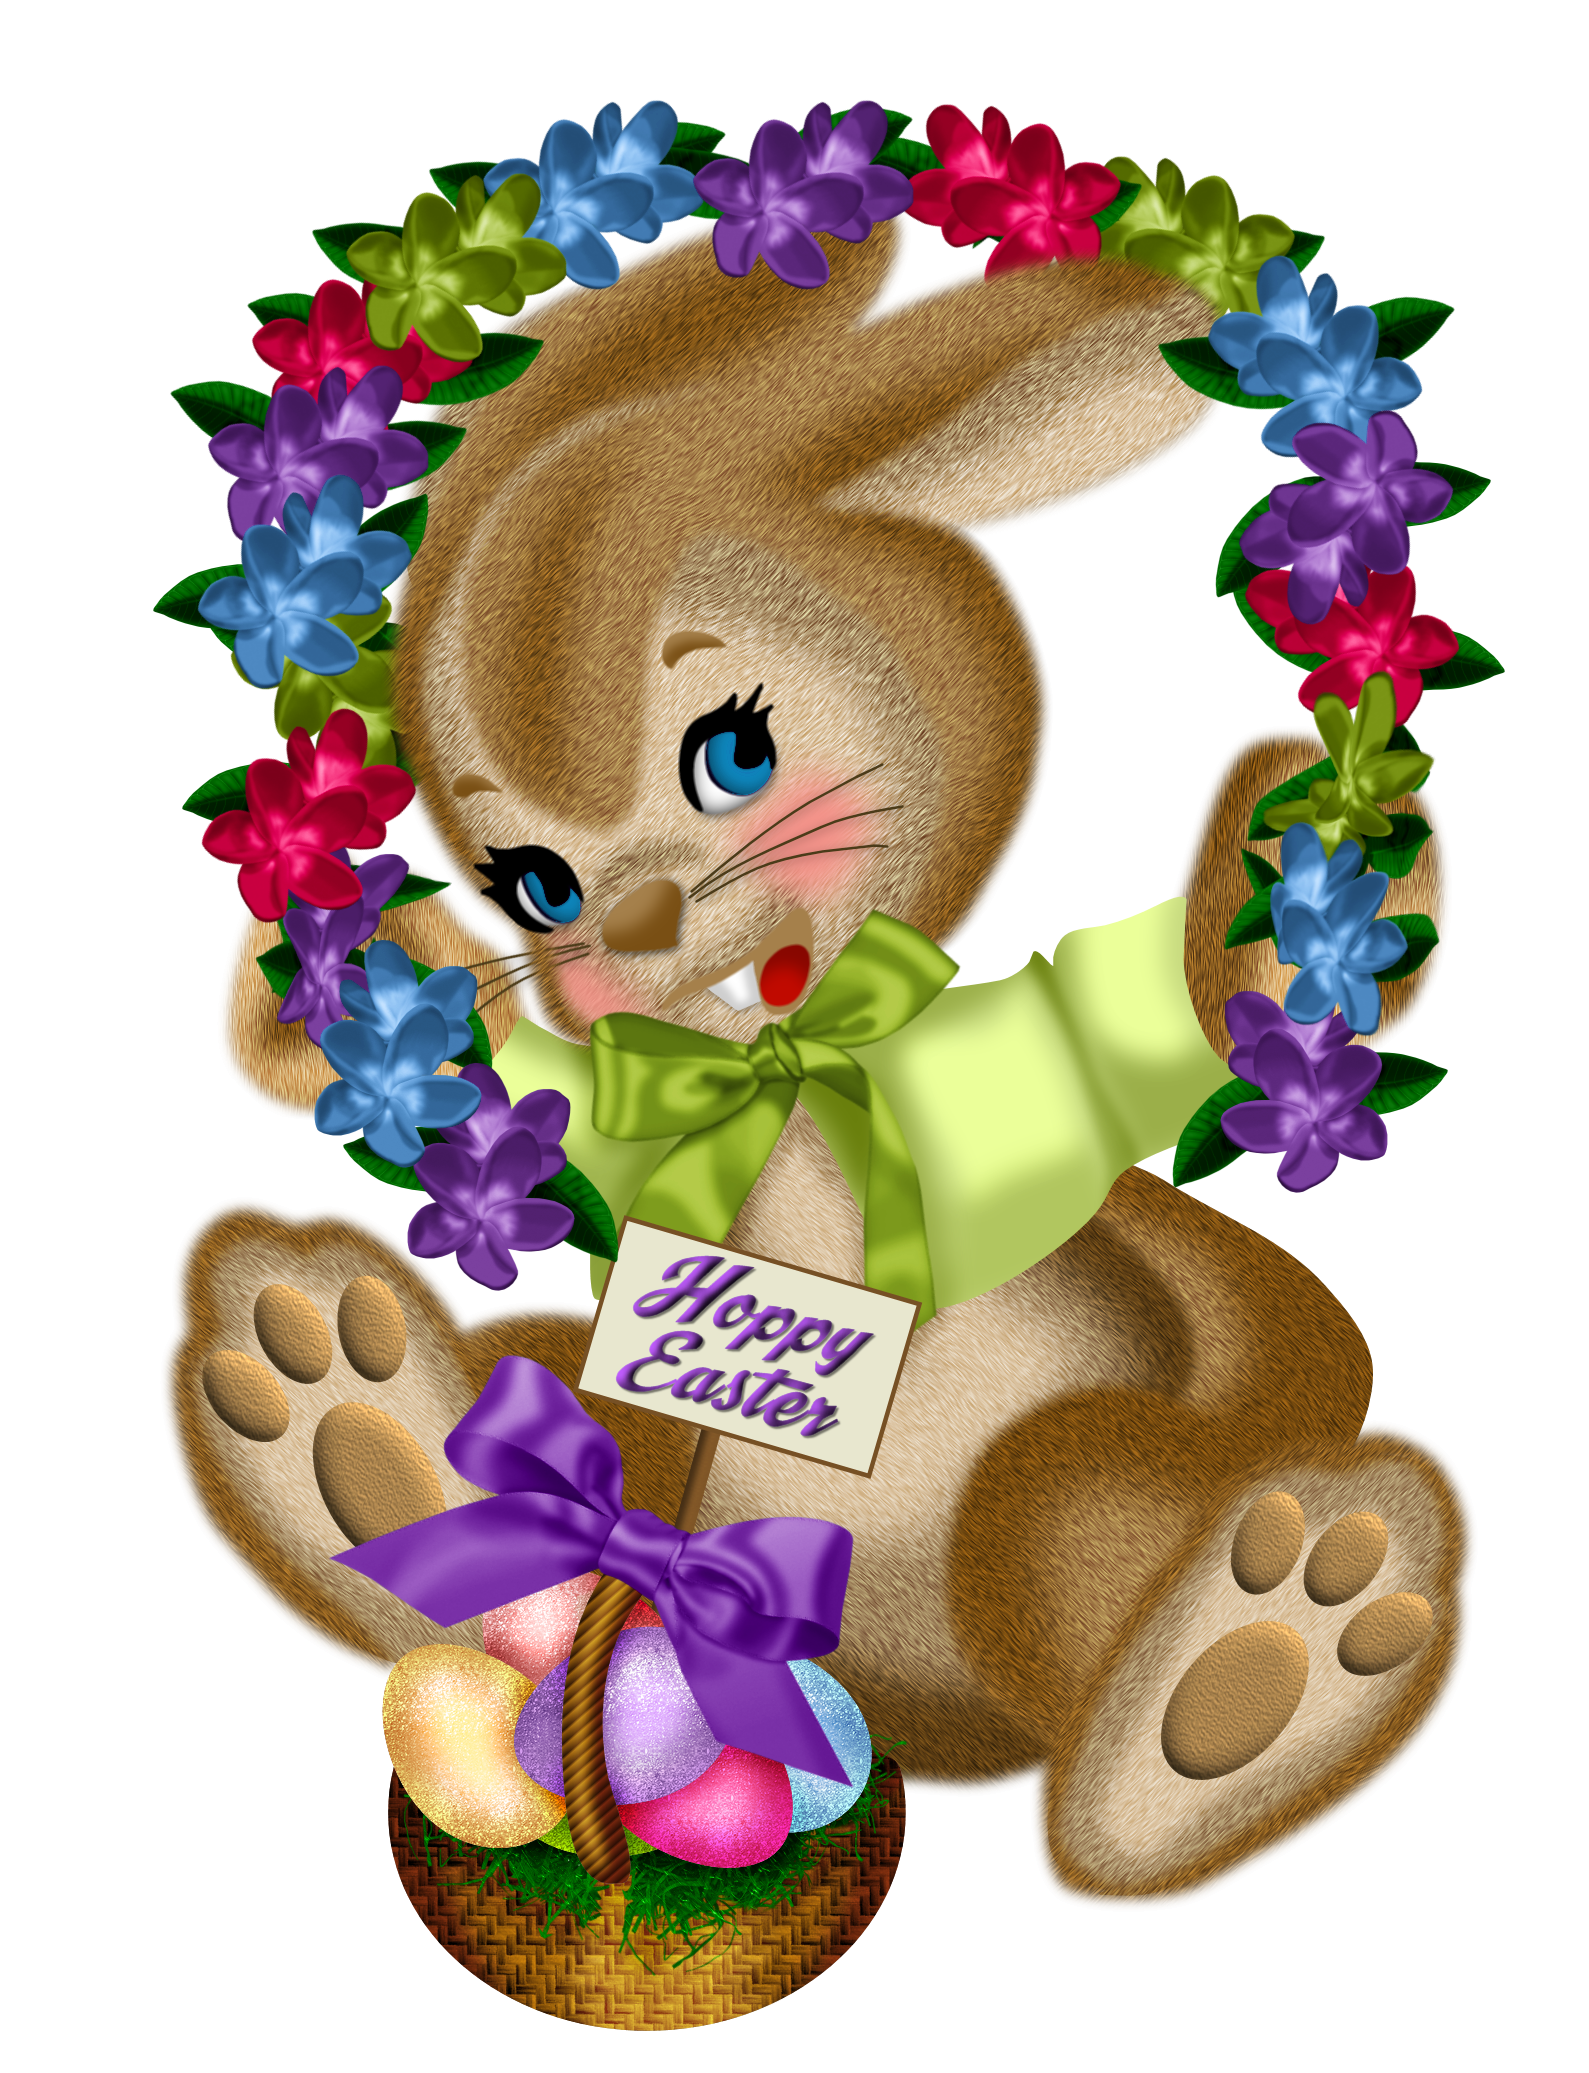 Hops clipart wreath. Happy easter bunny with